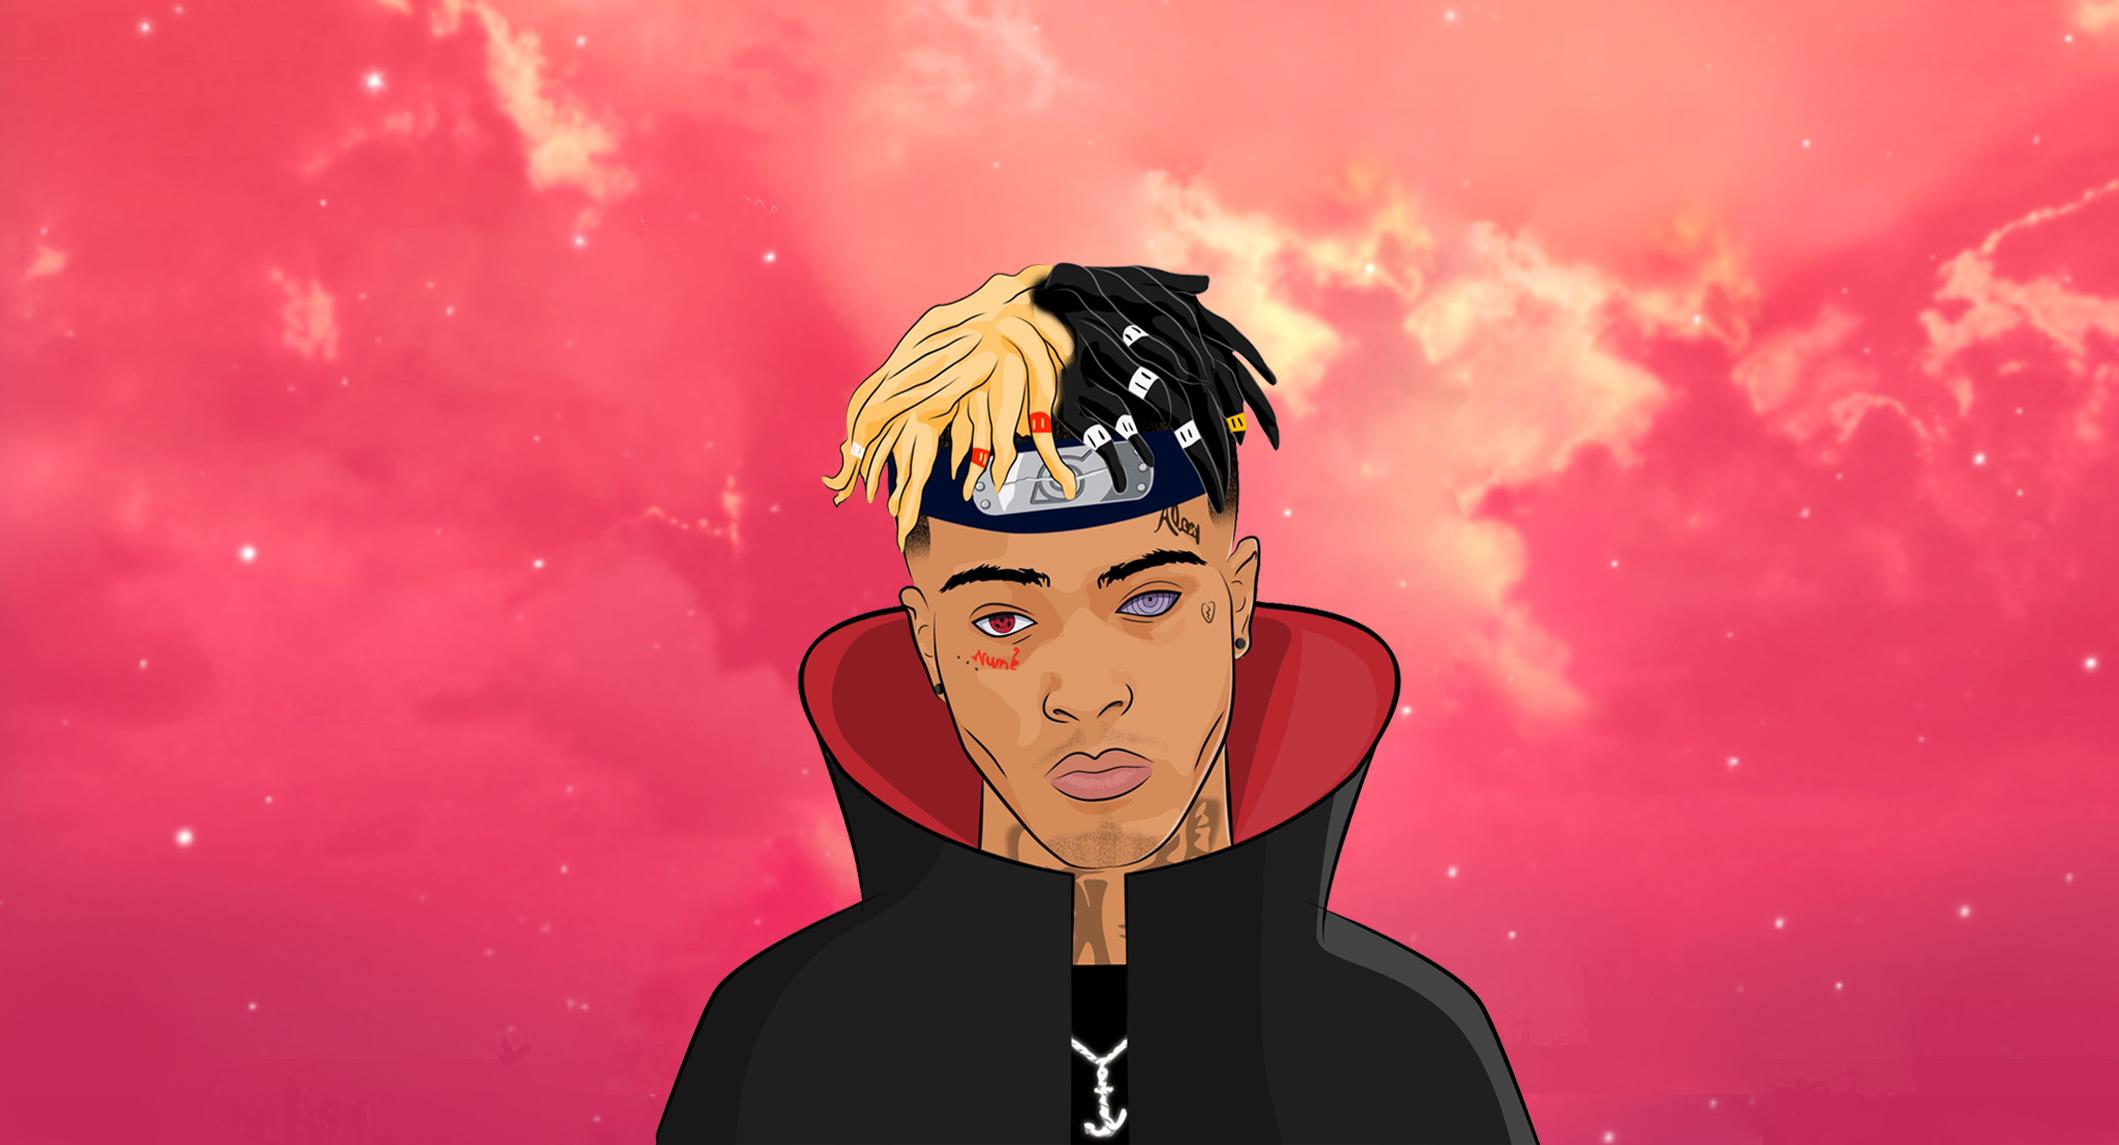 XXXTentacion PS4 Wallpapers - Top Free XXXTentacion PS4